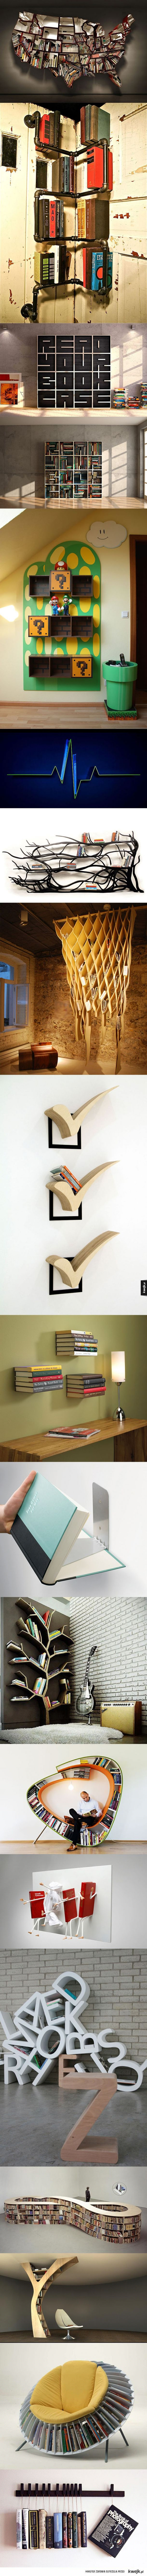 Amazing book shelves